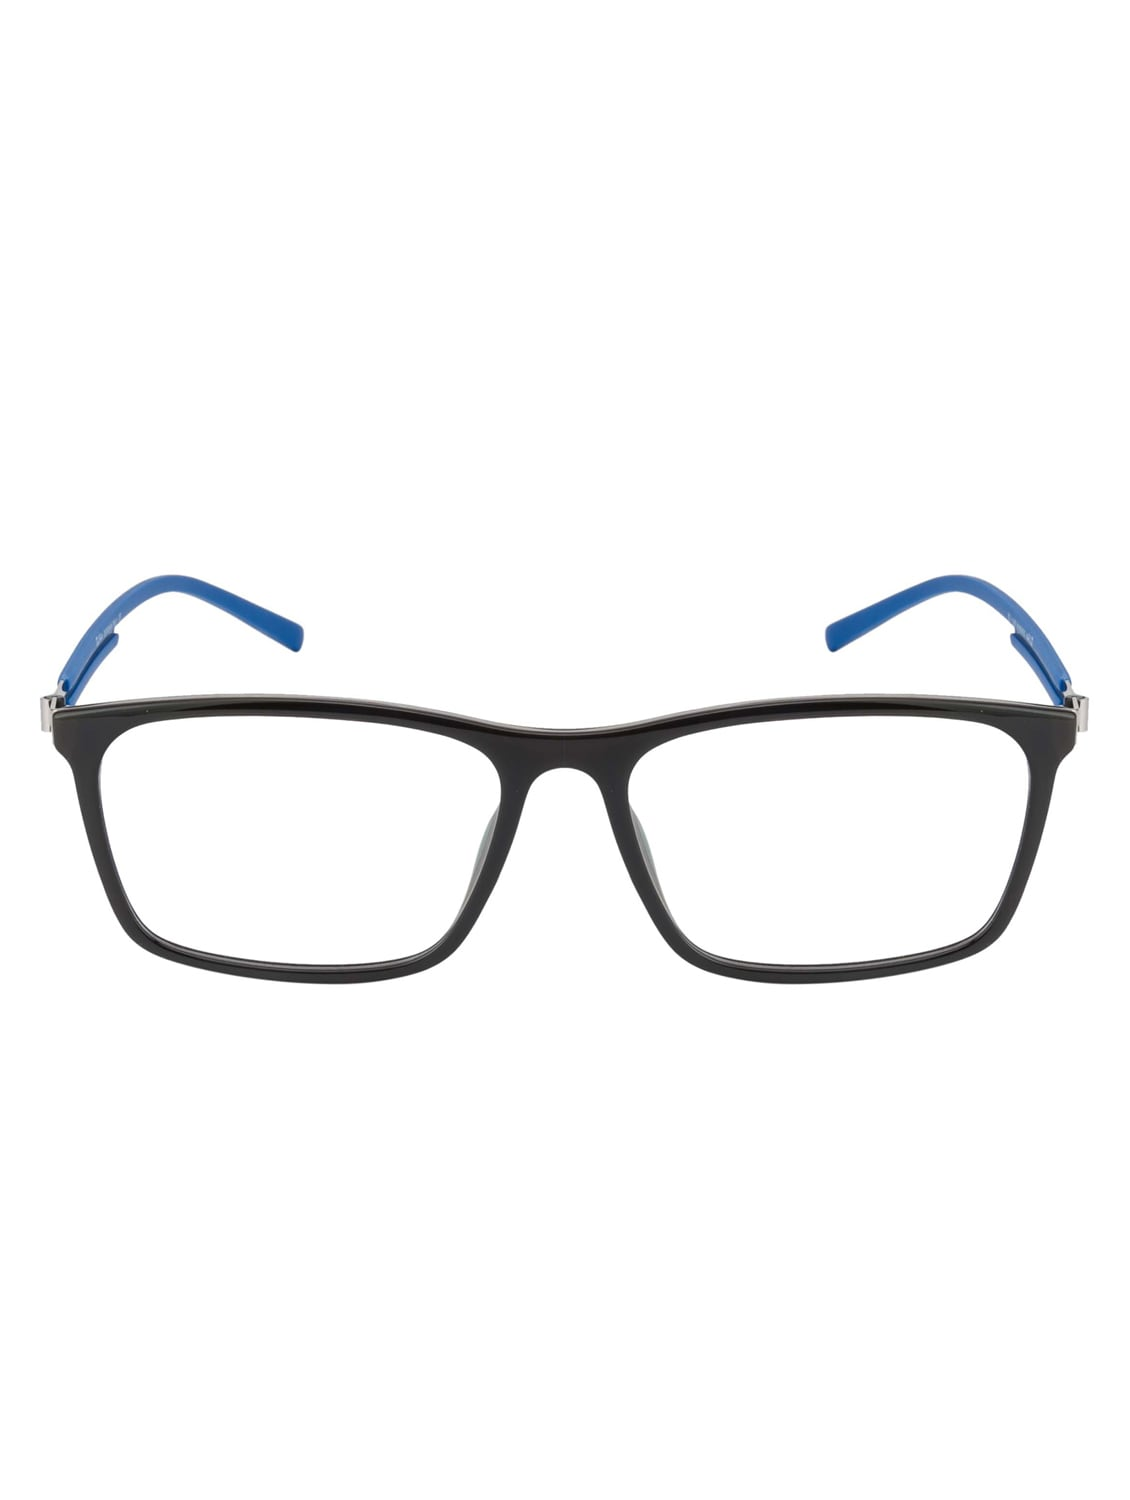 02db7702f5 Buy Ted Smith Black Unisex Wayfarer Frames by Ted Smith - Online shopping  for Men Spectacle Frames in India